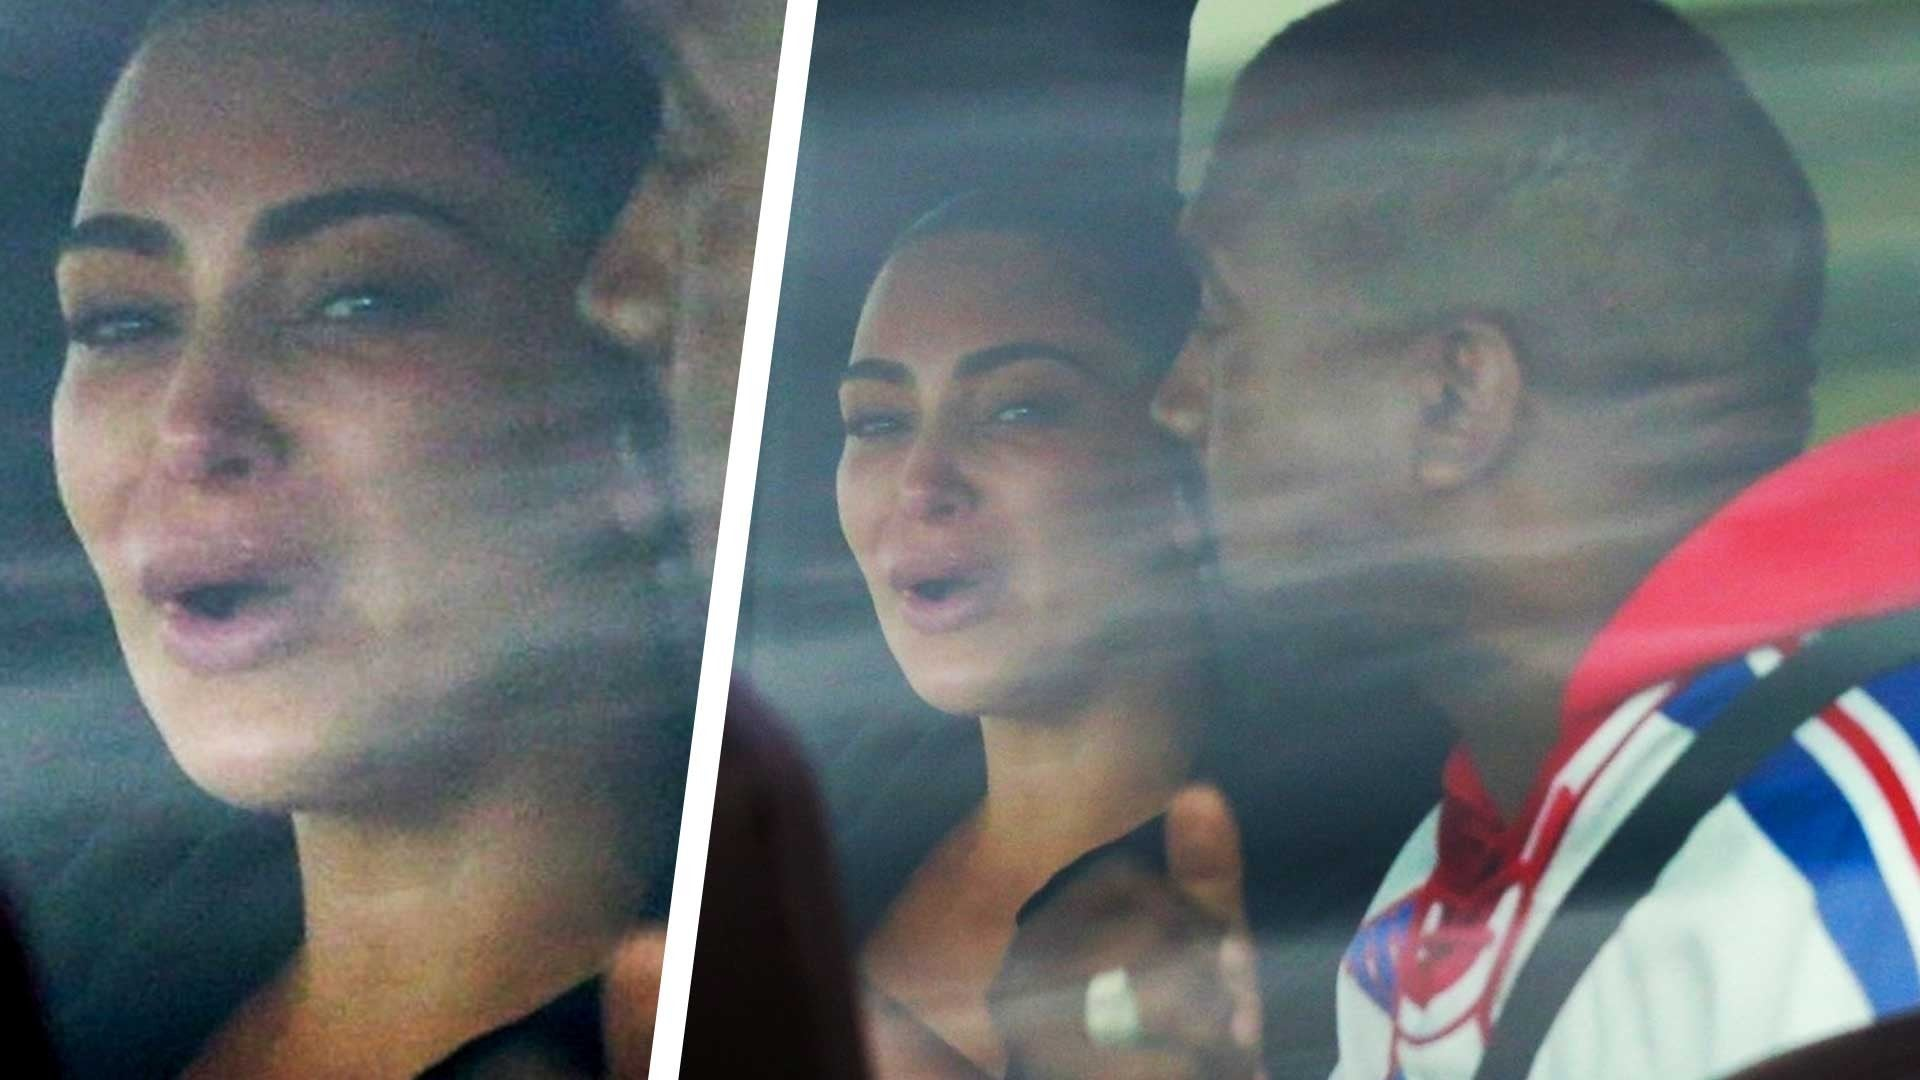 Reality star Kim Kardashian has filed papers to divorce her rapper husband Kanye West